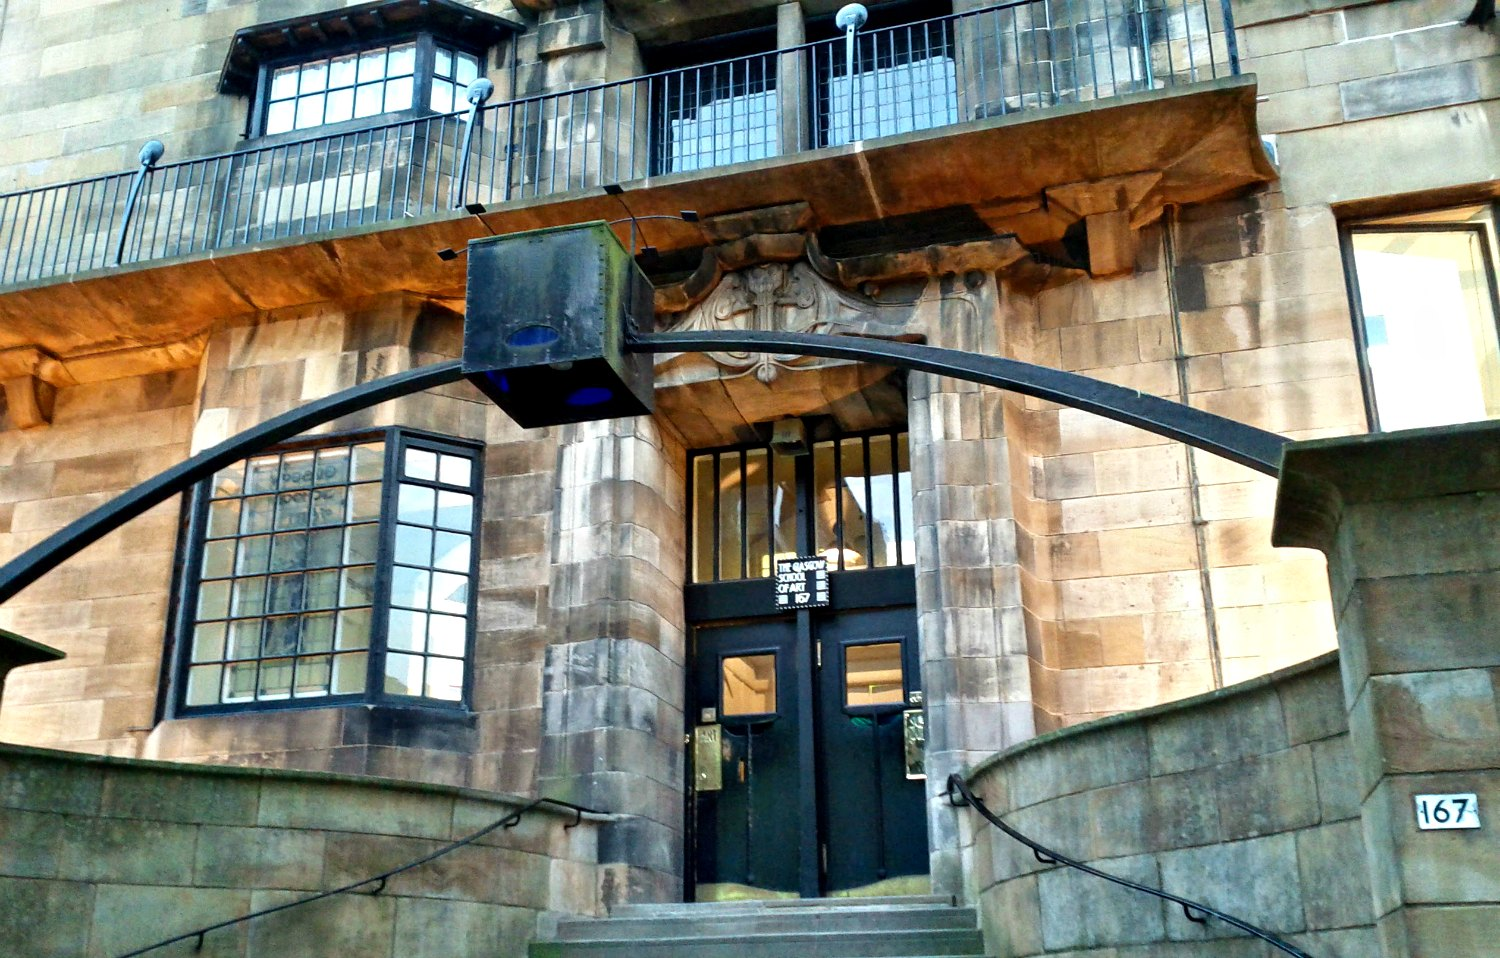 Glasgow School of Art - before it was destroyed.